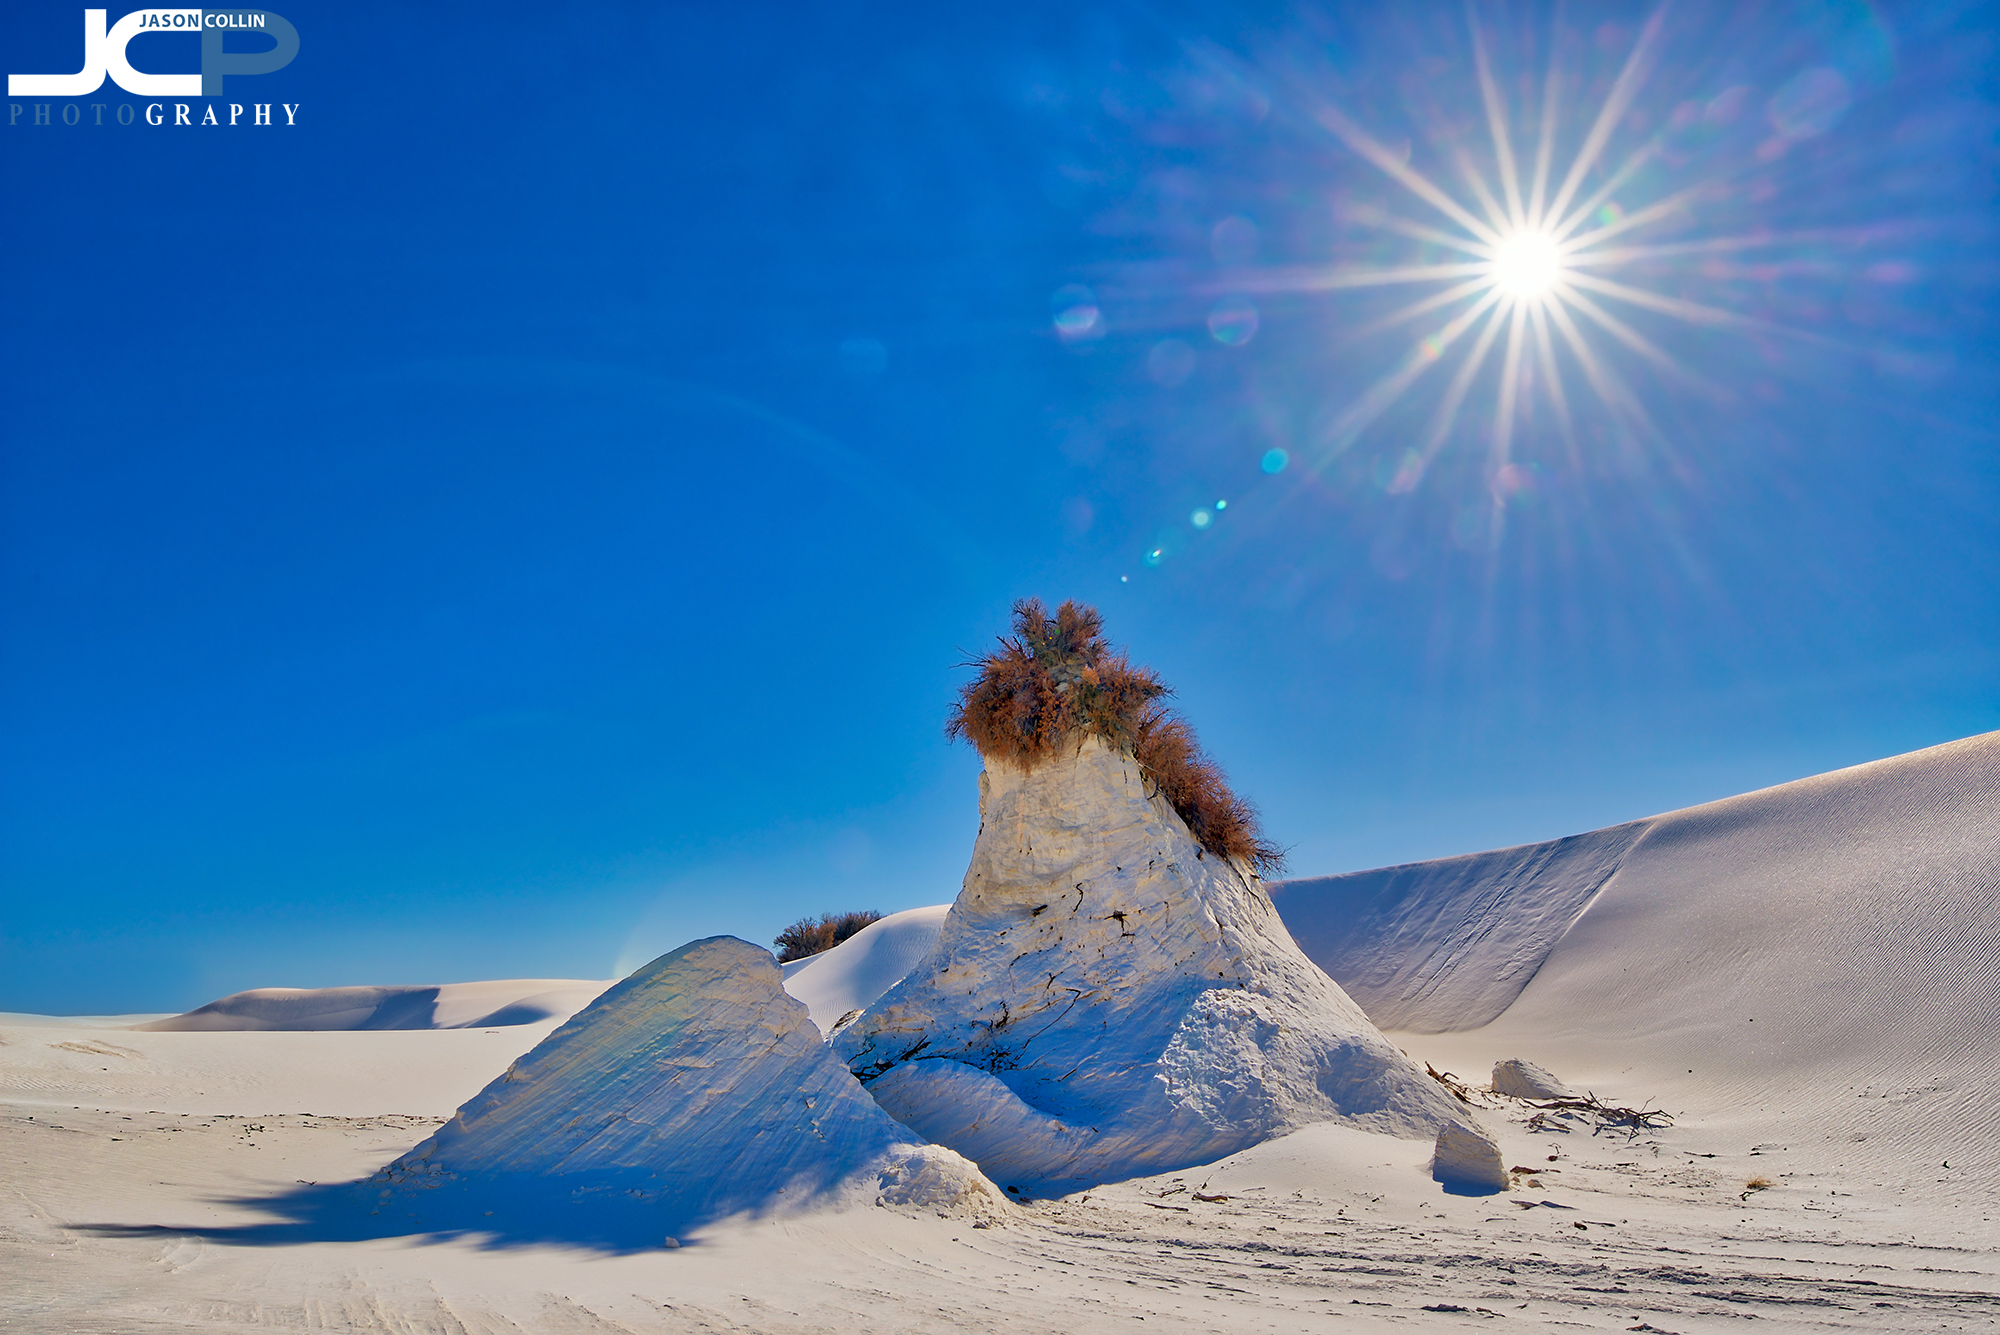 This anomaly in White Sands caught my eye and was where we spent an oasis - Nikon D750 with Tamron 15-30mm @ f/16 ISO 100 5-bracket HDR